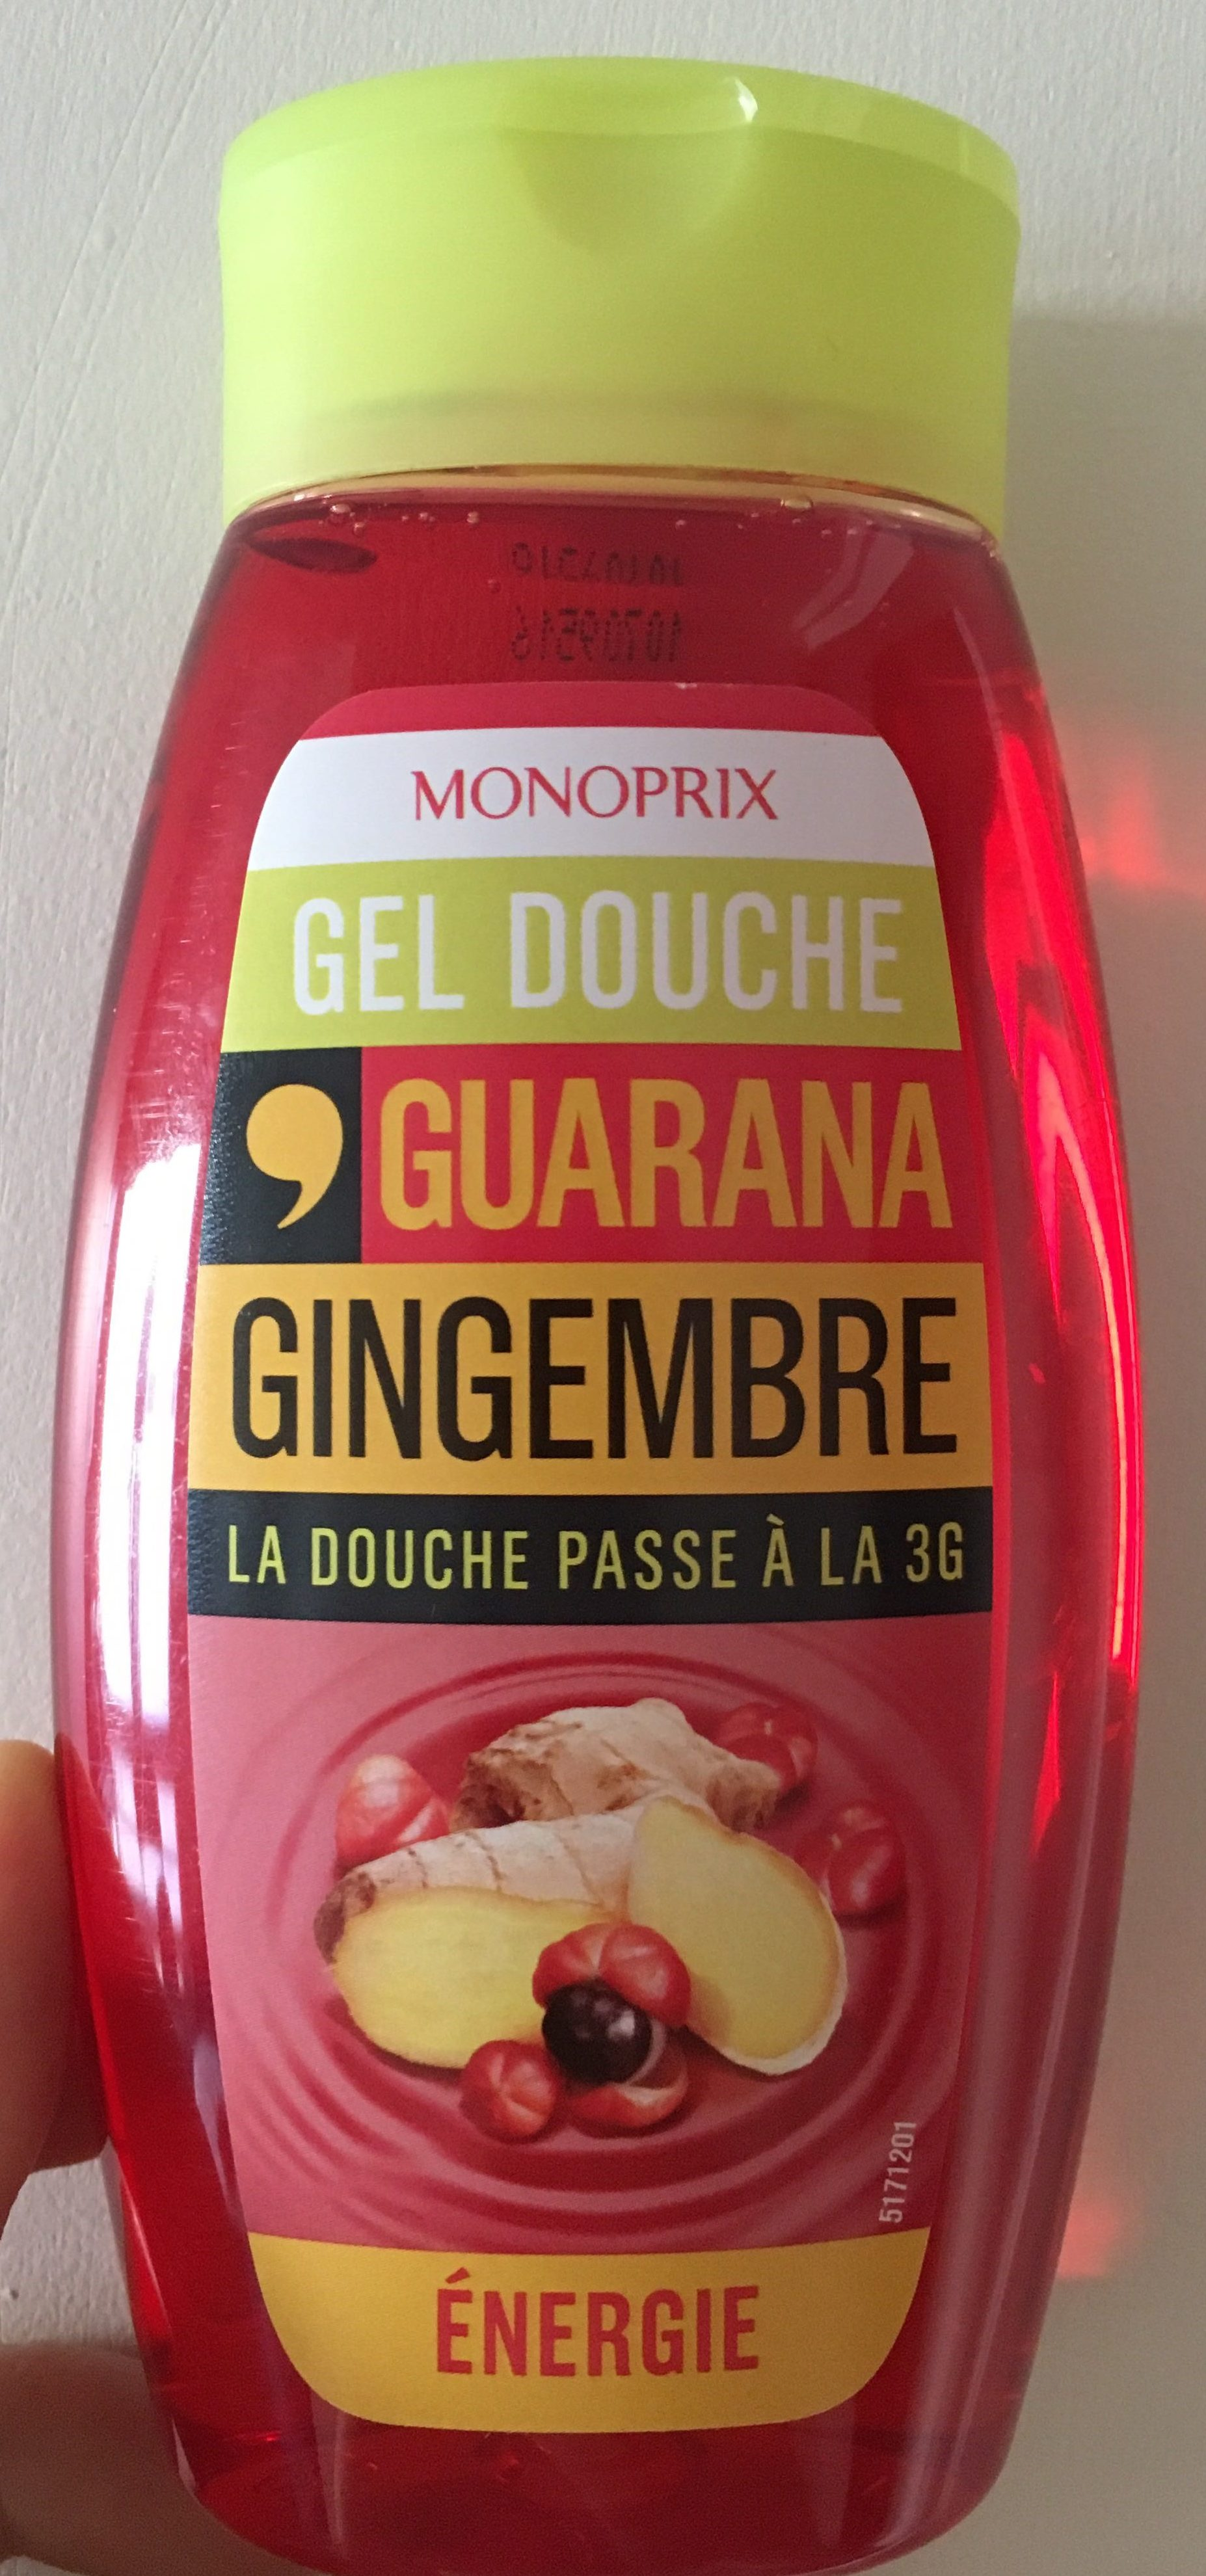 Gel douche Guarana Gingembre - Product